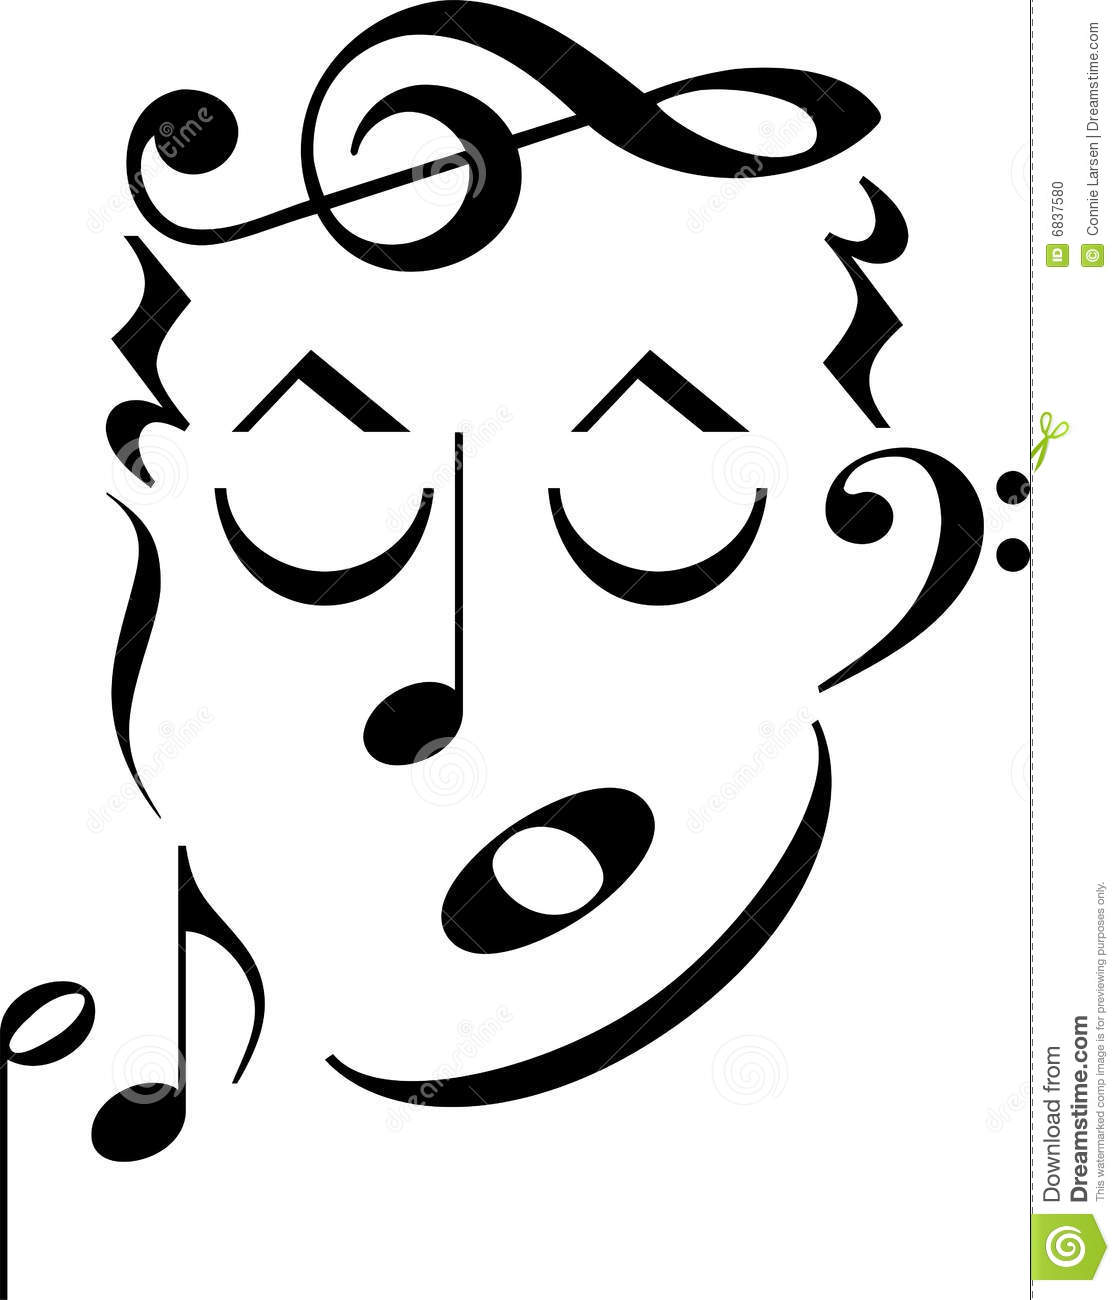 Music Notes Symbols For Facebook Clipart Panda Free Clipart Images